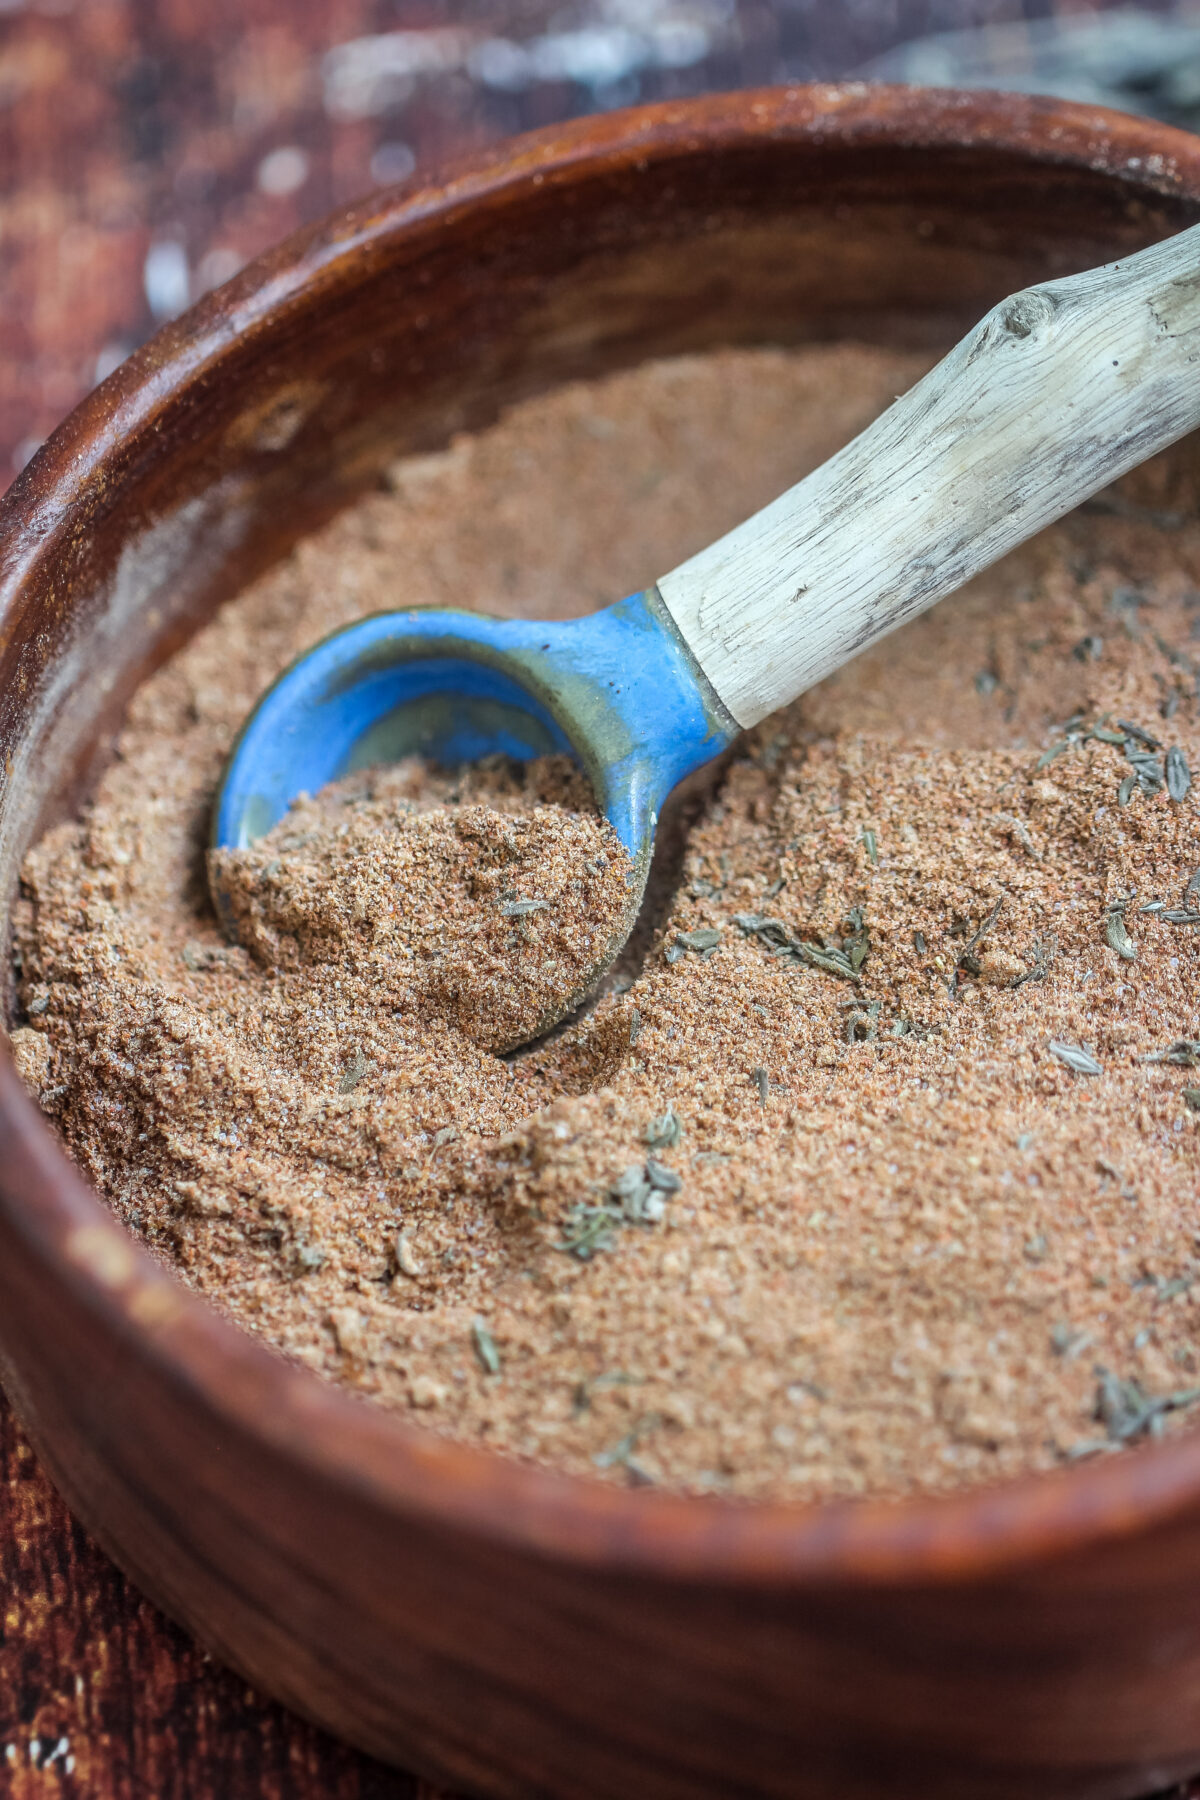 This Jamaican jerk seasoning recipe is a simple but tasty homemade recipe. Great to have on hand when you want that Island flavour!